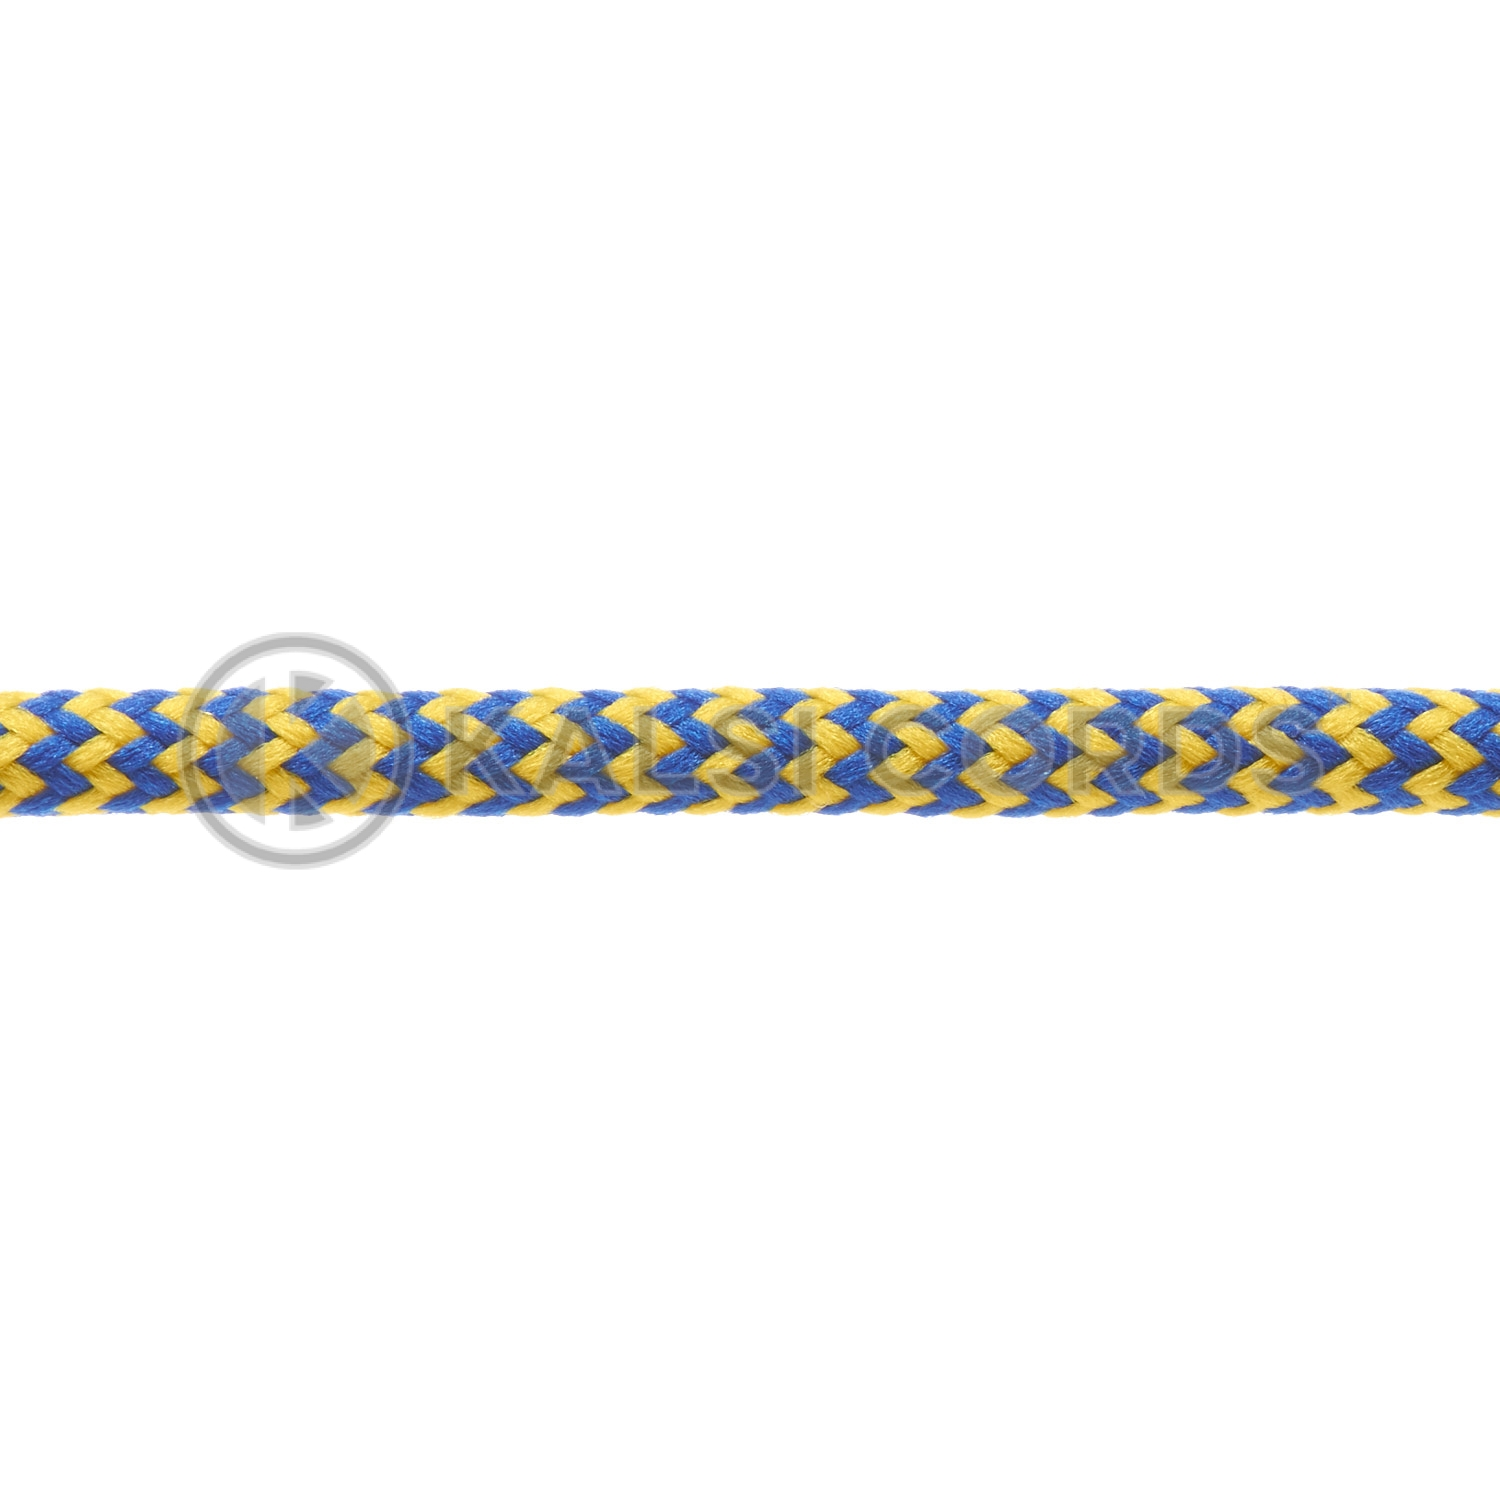 T621 5mm Round Cord Shoe Laces Royal Blue Yellow Herringbone Pattern Kids Trainers Adults Hiking Walking Boots Kalsi Cords